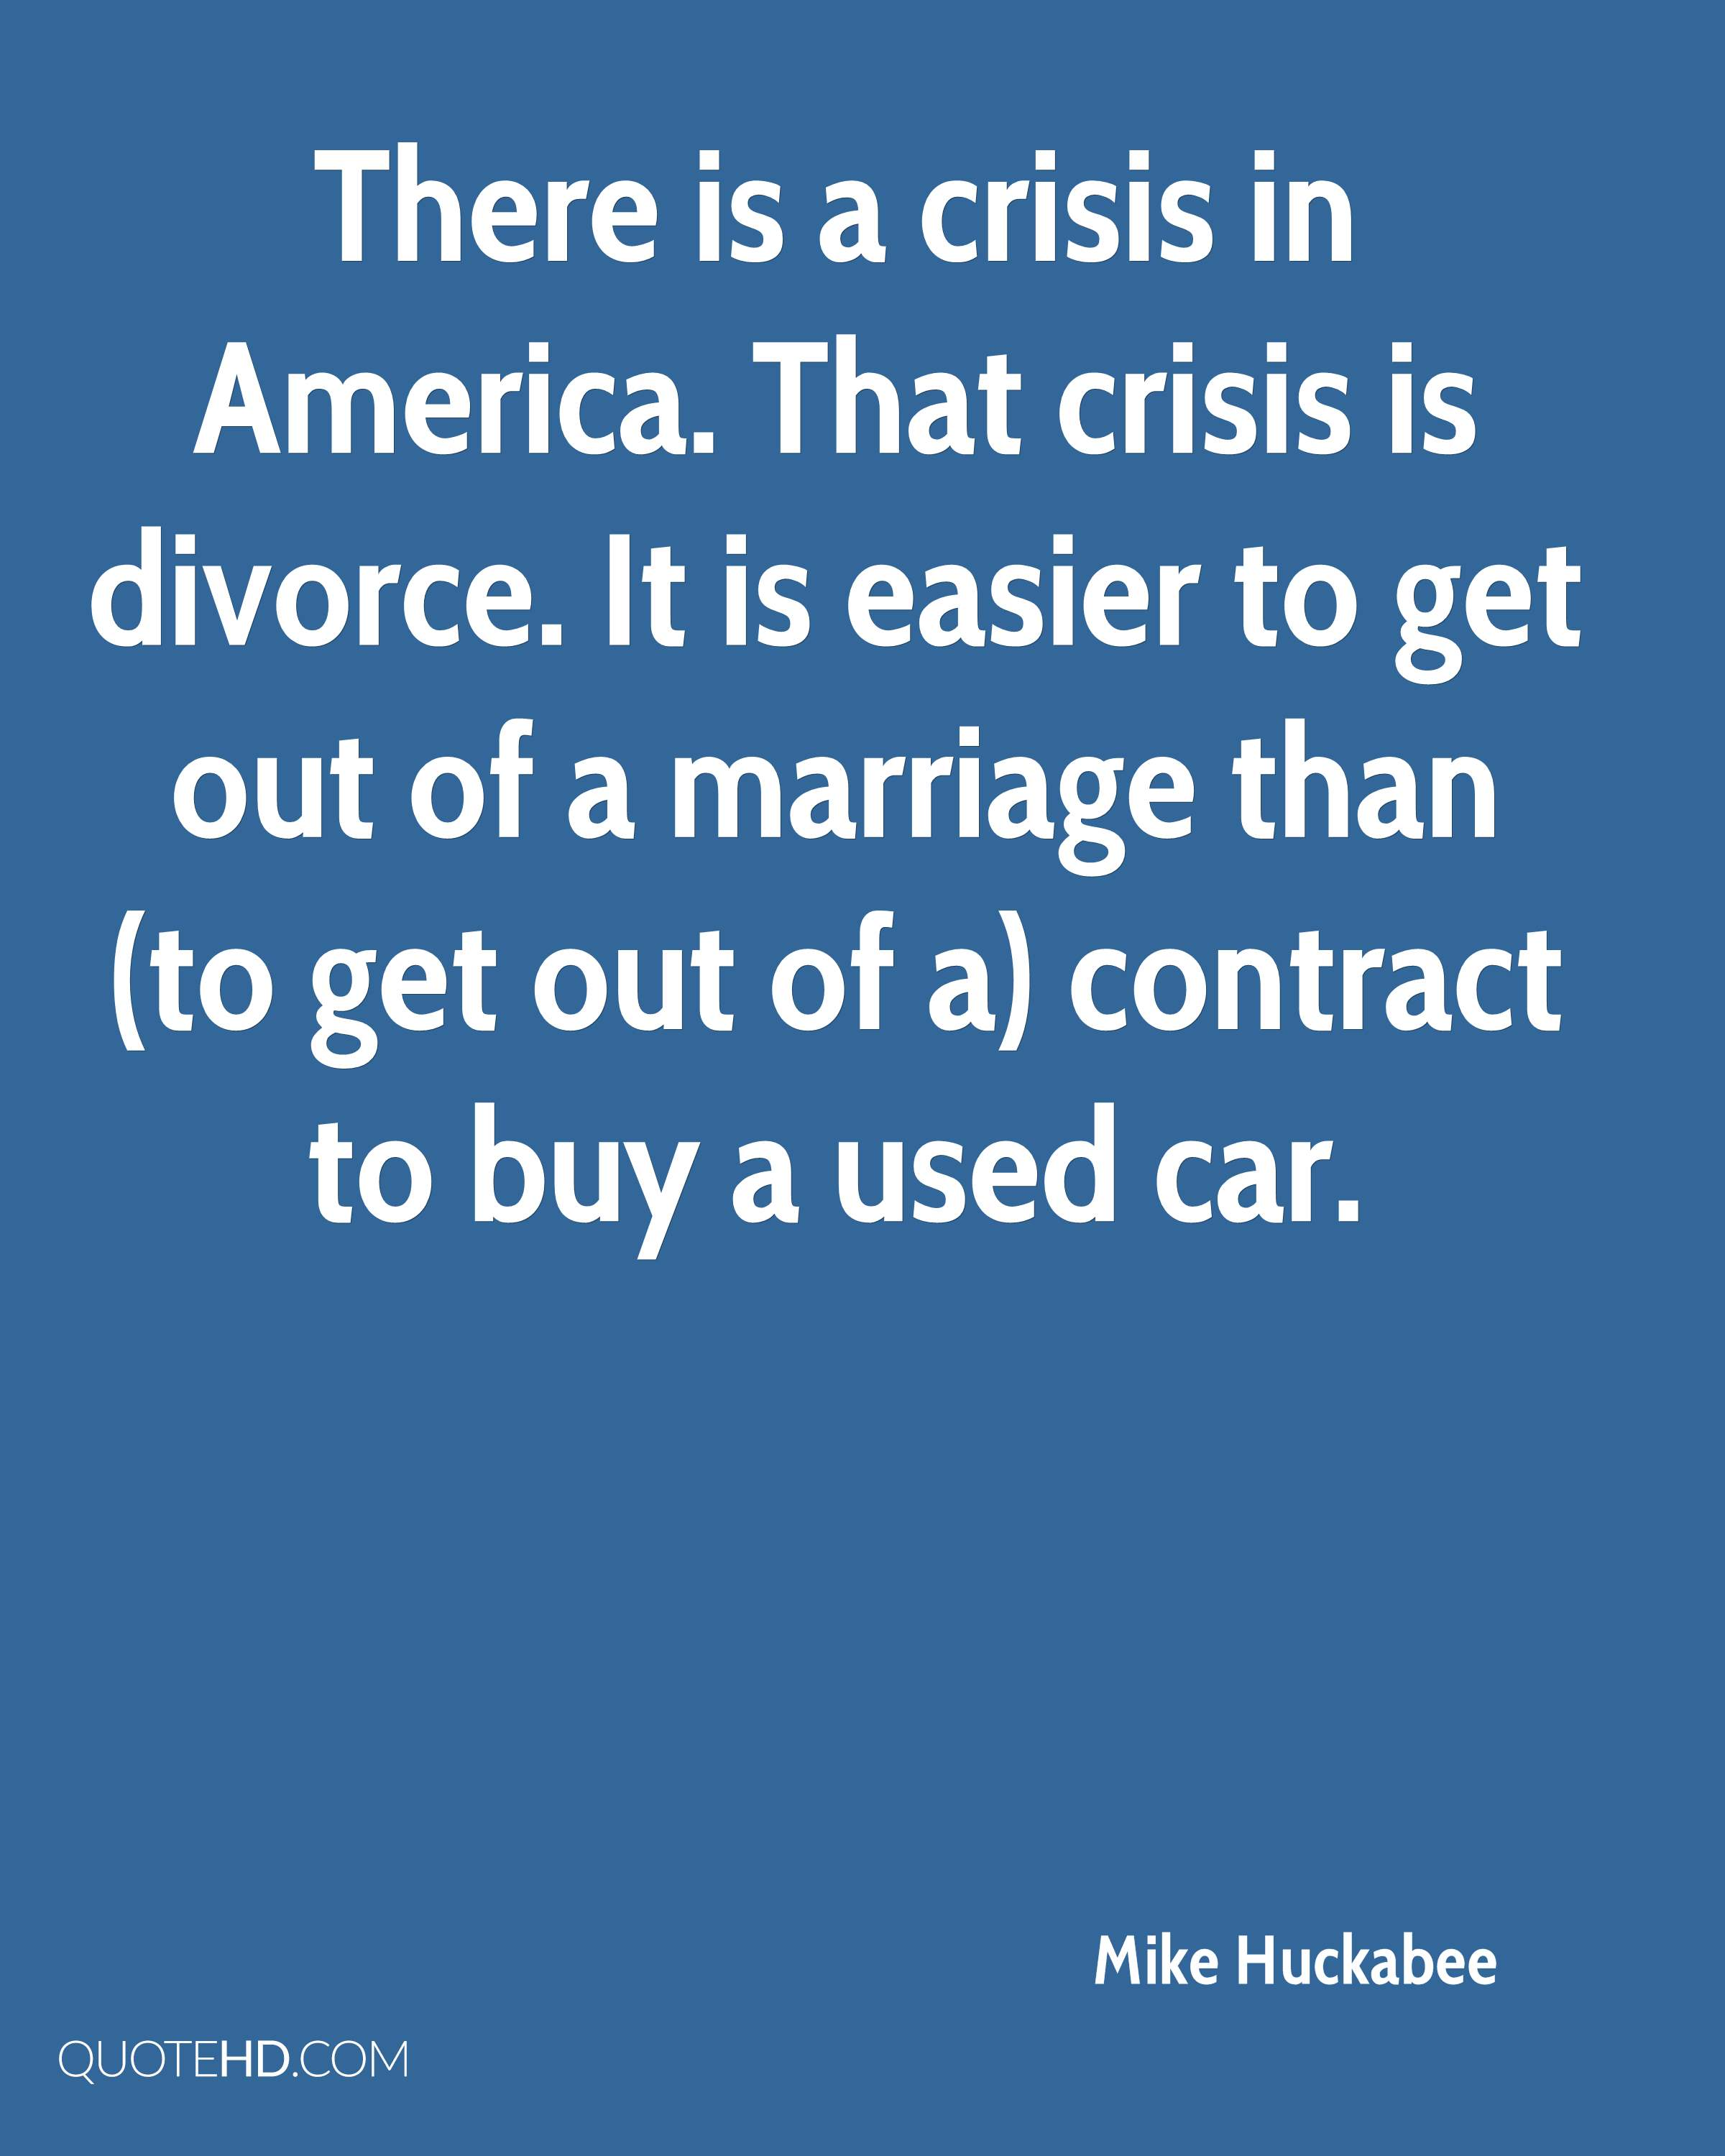 There is a crisis in America. That crisis is divorce. It is easier to get out of a marriage than (to get out of a) contract to buy a used car.